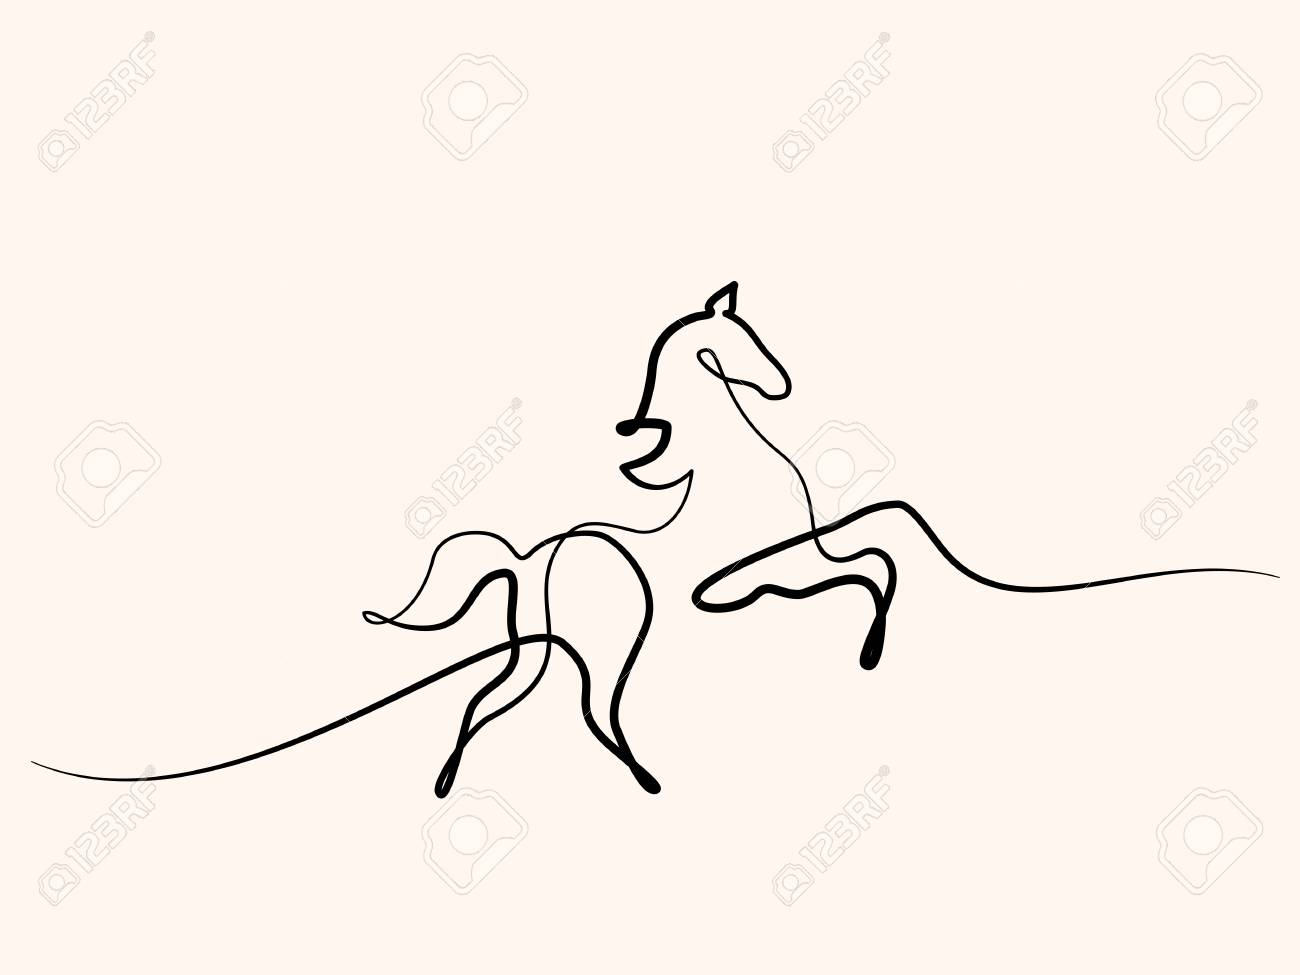 Continuous One Line Drawing Horse Logo Black And White Vector Royalty Free Cliparts Vectors And Stock Illustration Image 100592403